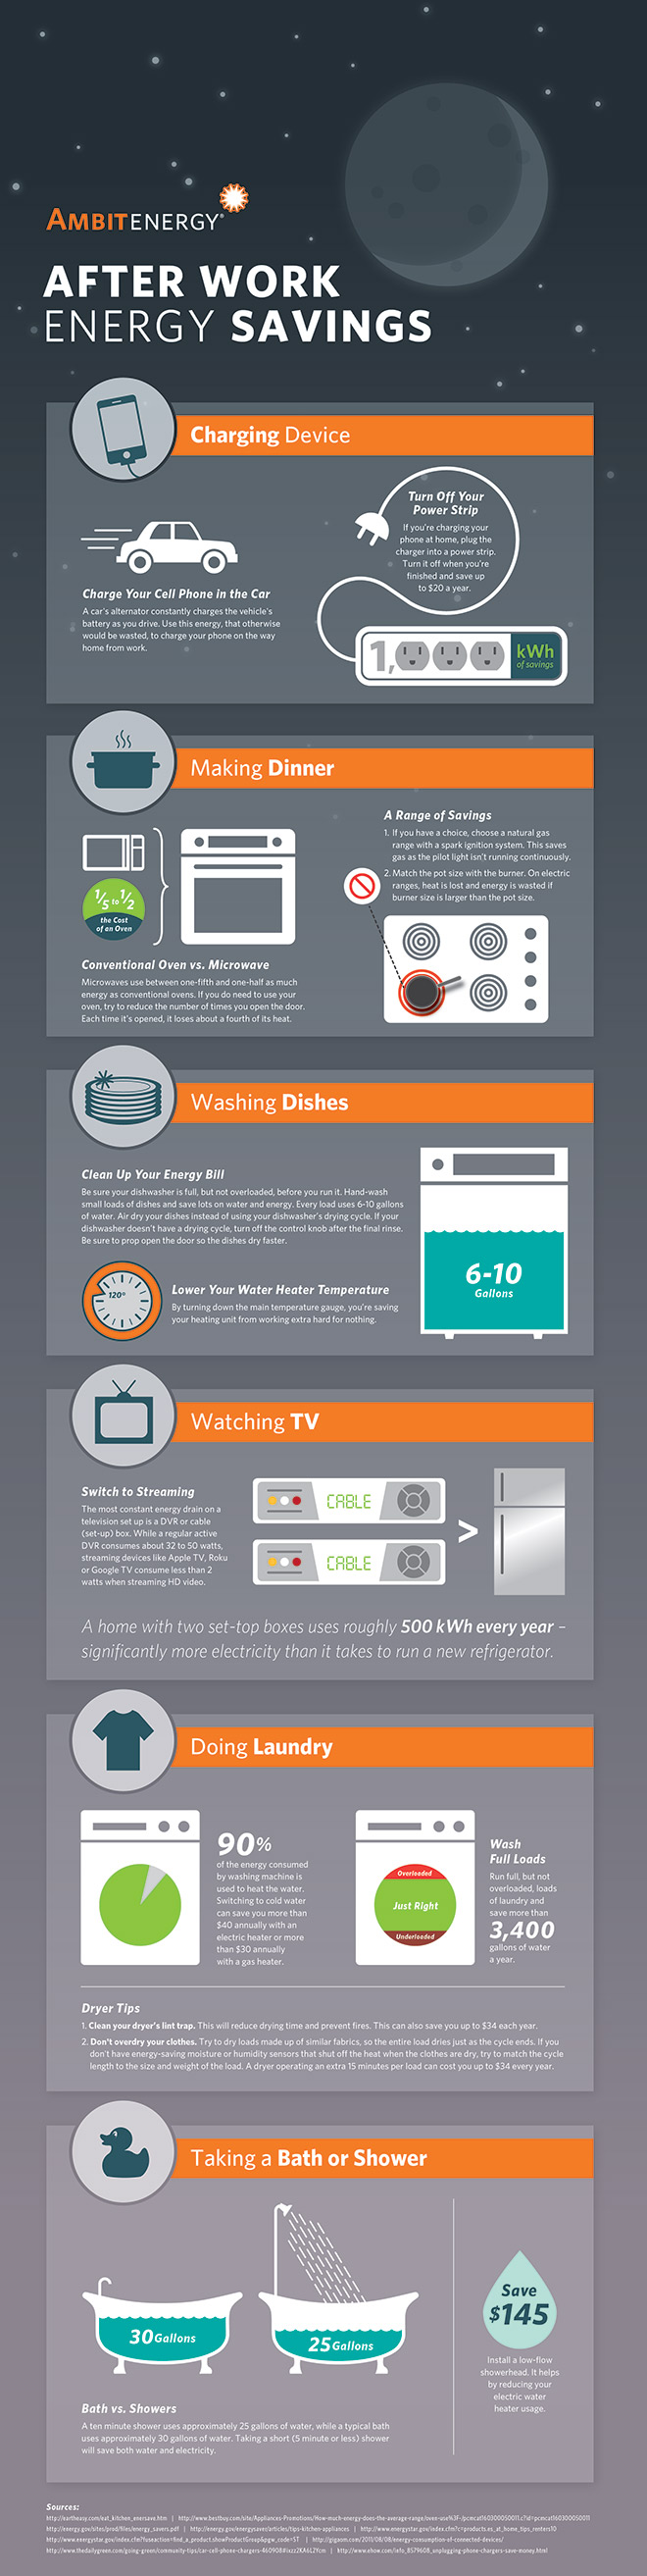 Infographic: Save More with After Work Energy Savings Tips